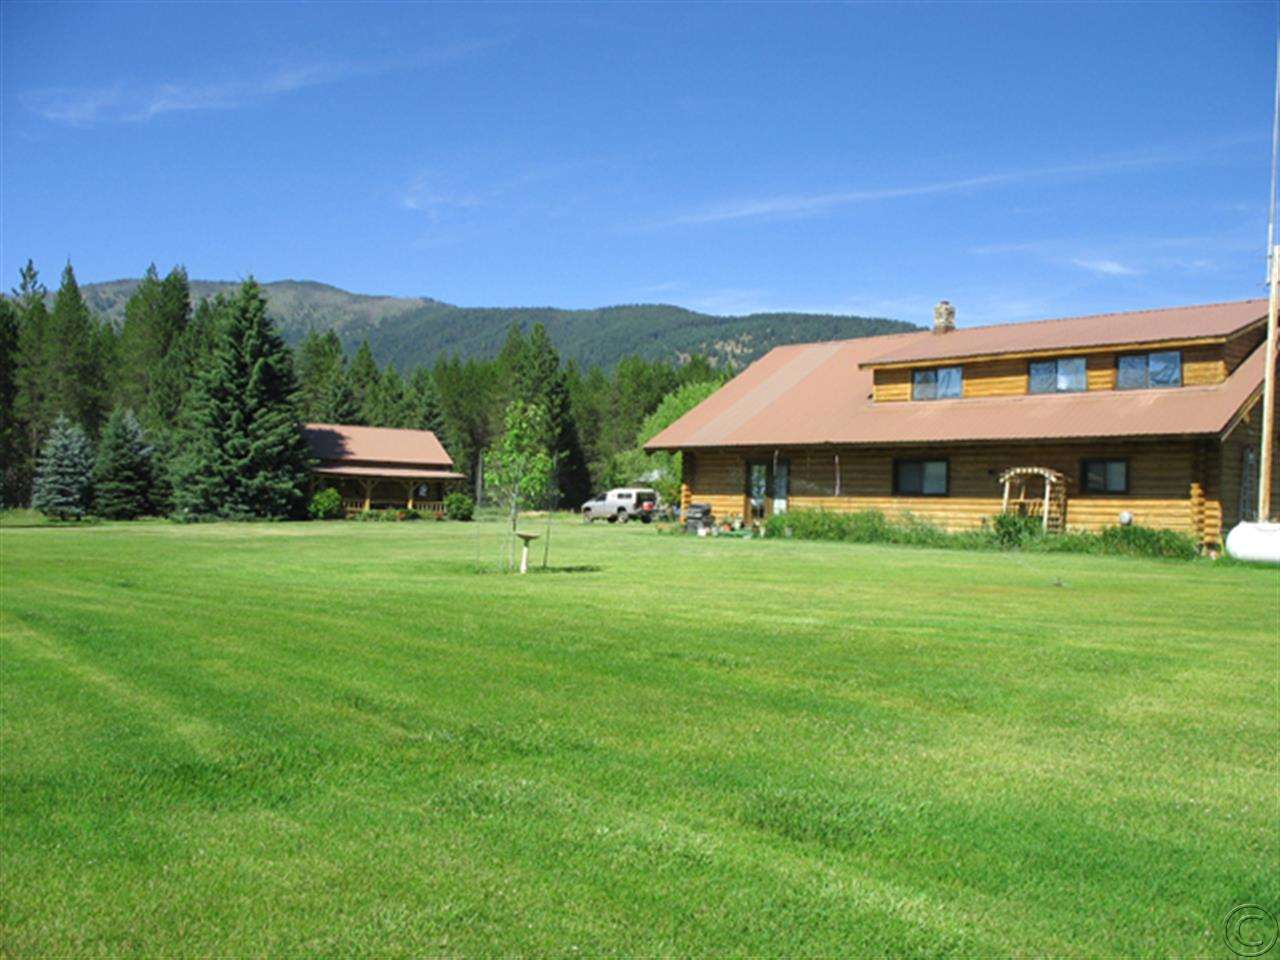 trout creek big and beautiful singles It's a big world and the loveandseekcom community wants to help you connect bearwolf57 trout creek, mt 1 more photo 60 black singles | big and beautiful.